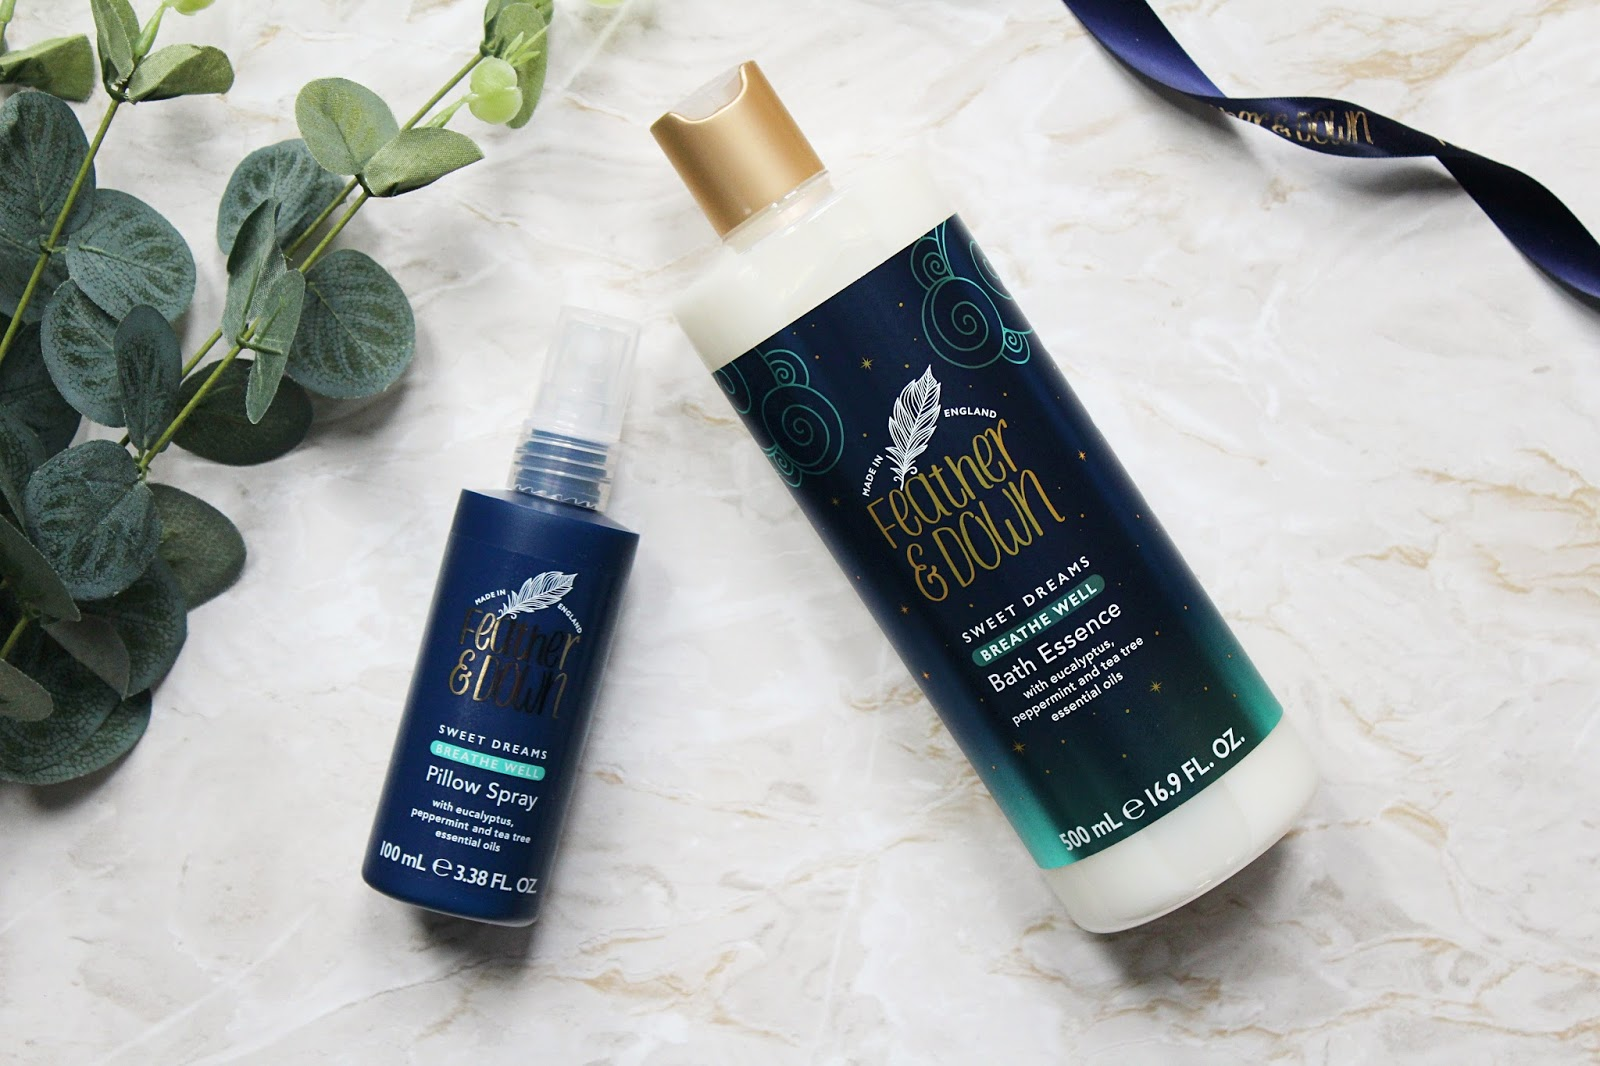 Feather & Down Breathe Well Pillow Spray & Bath Essence